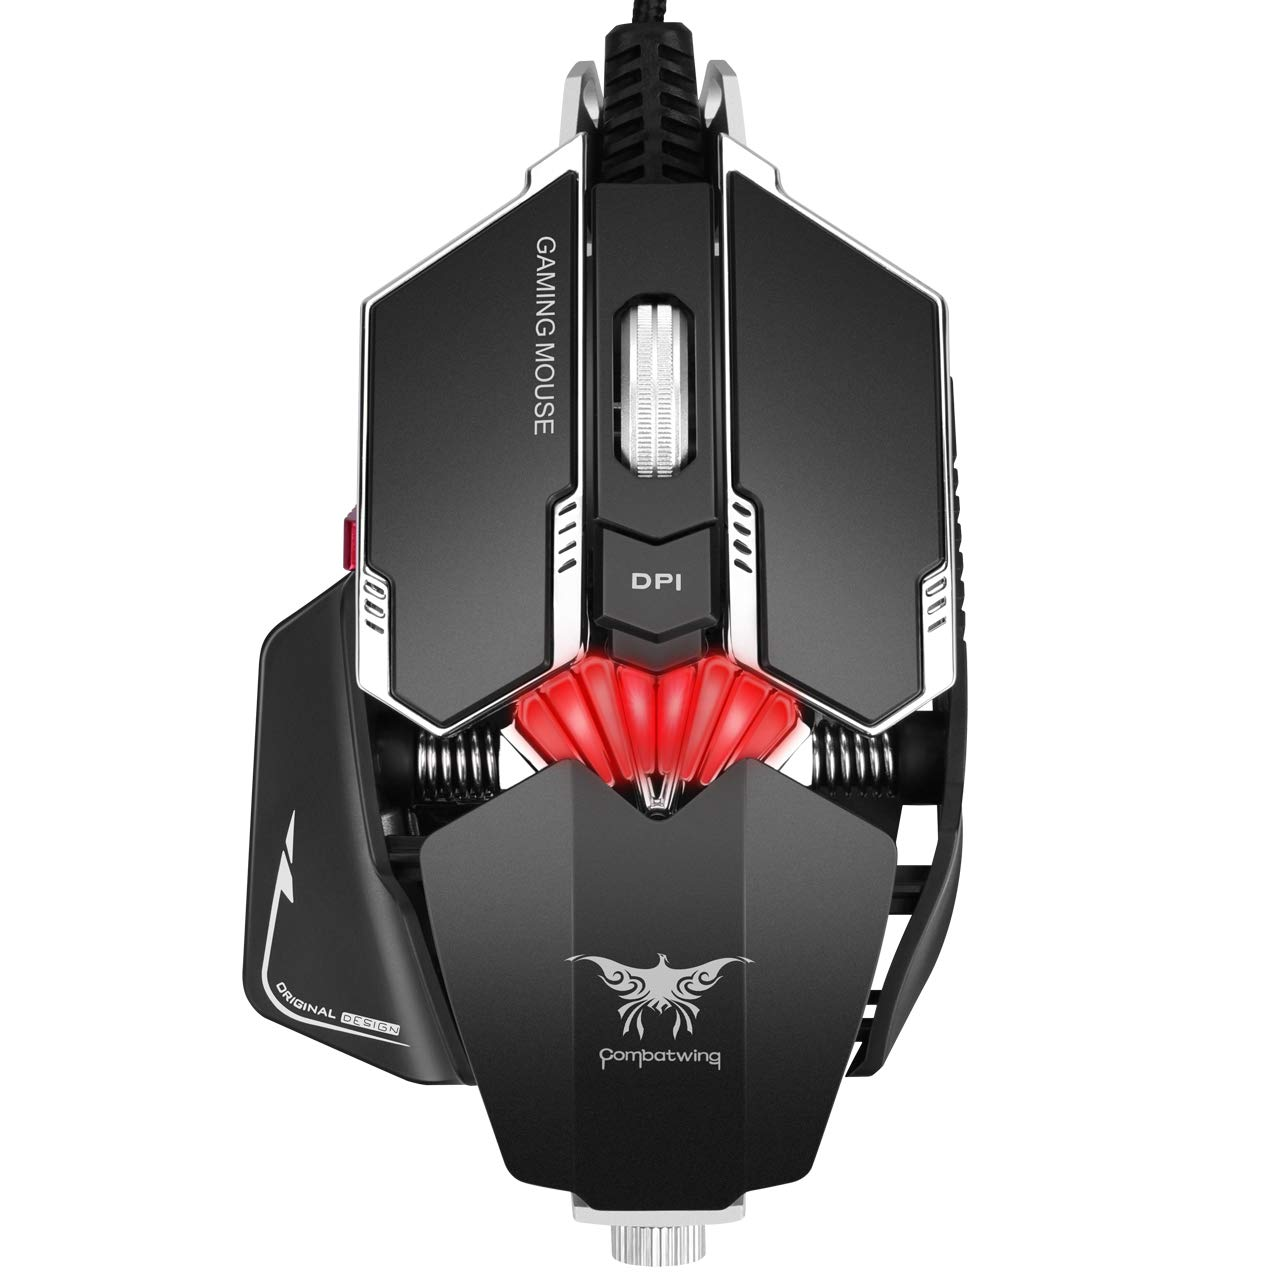 Mouse Gamer : Combatwing RGB Con cable con 8 Program. Botone